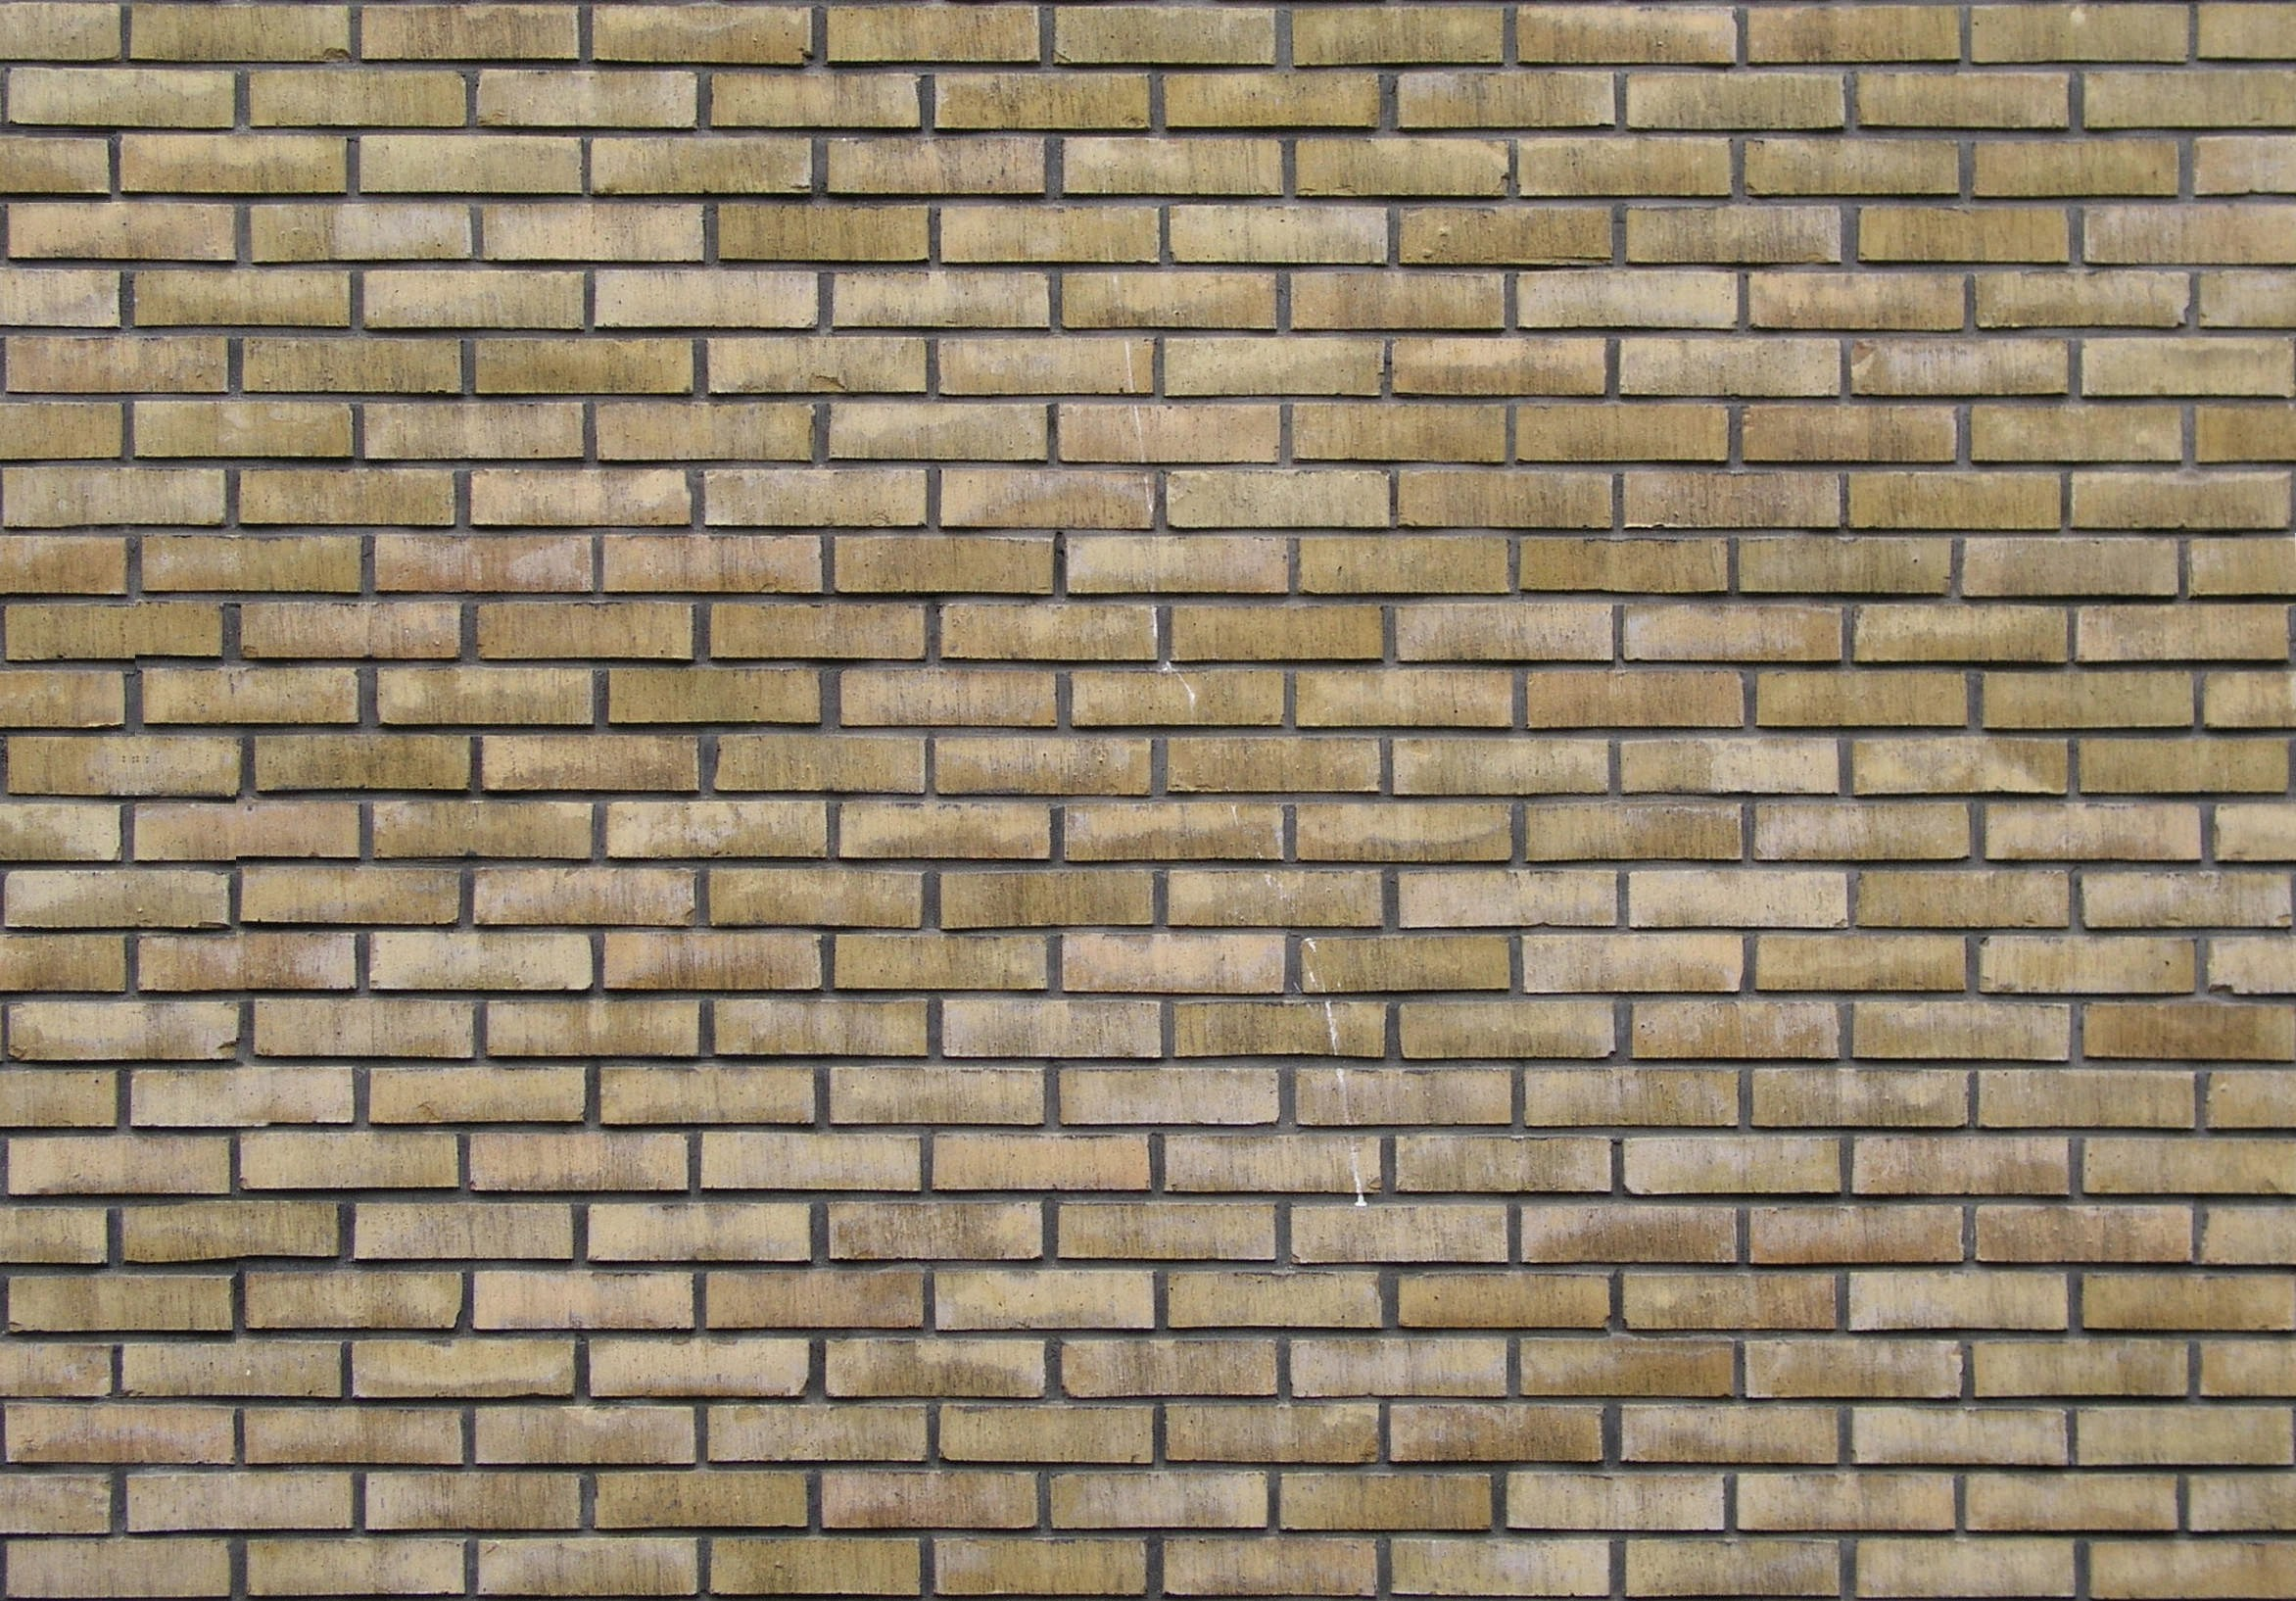 Brick Wall Design 35 Brick Wall Backgrounds Psd Vector Eps Jpg Download